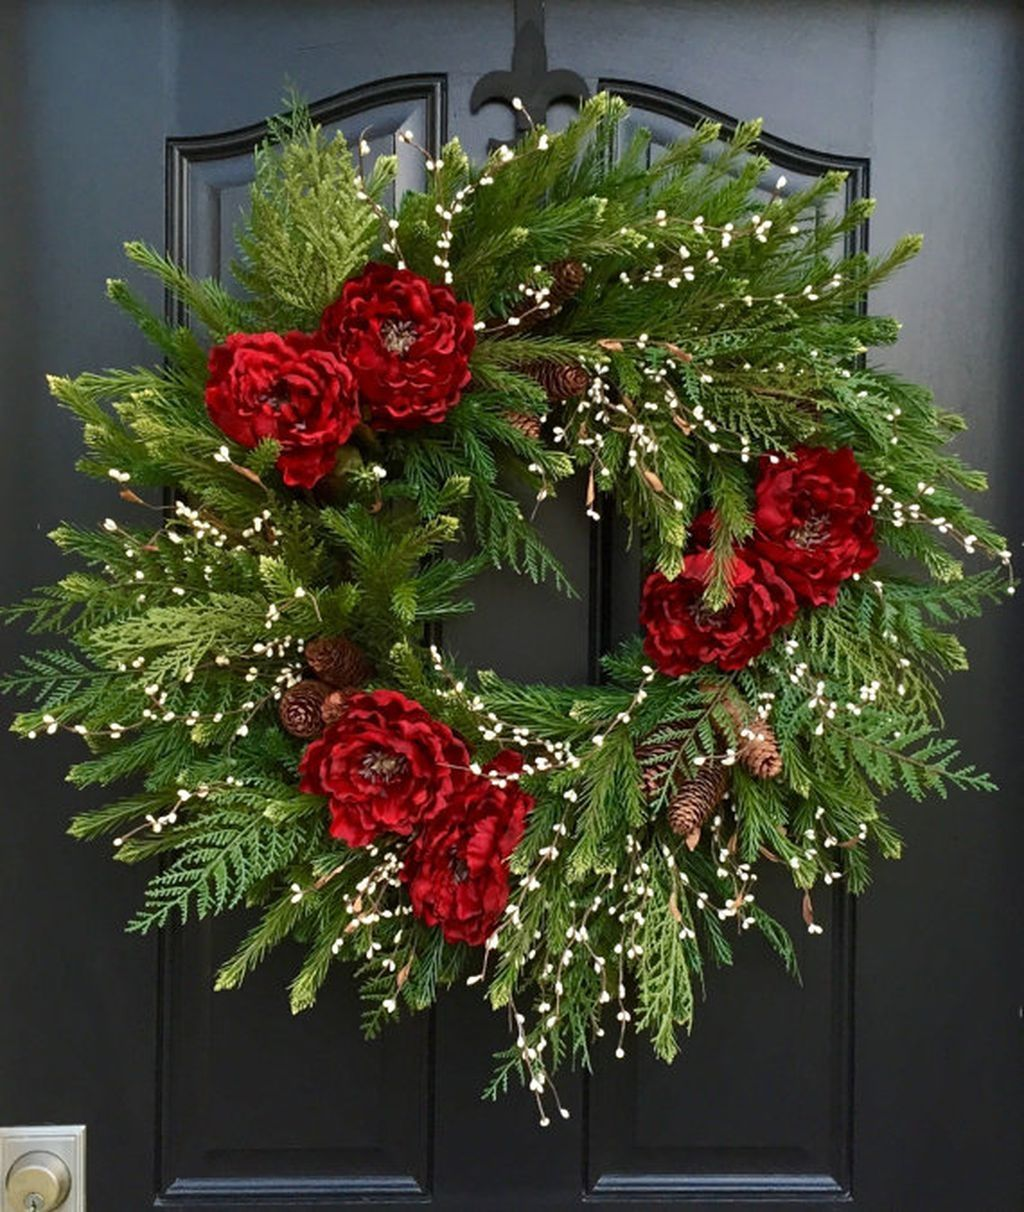 fabulous christmas wreaths decoration ideas to makes style to your home 21 dailypatio